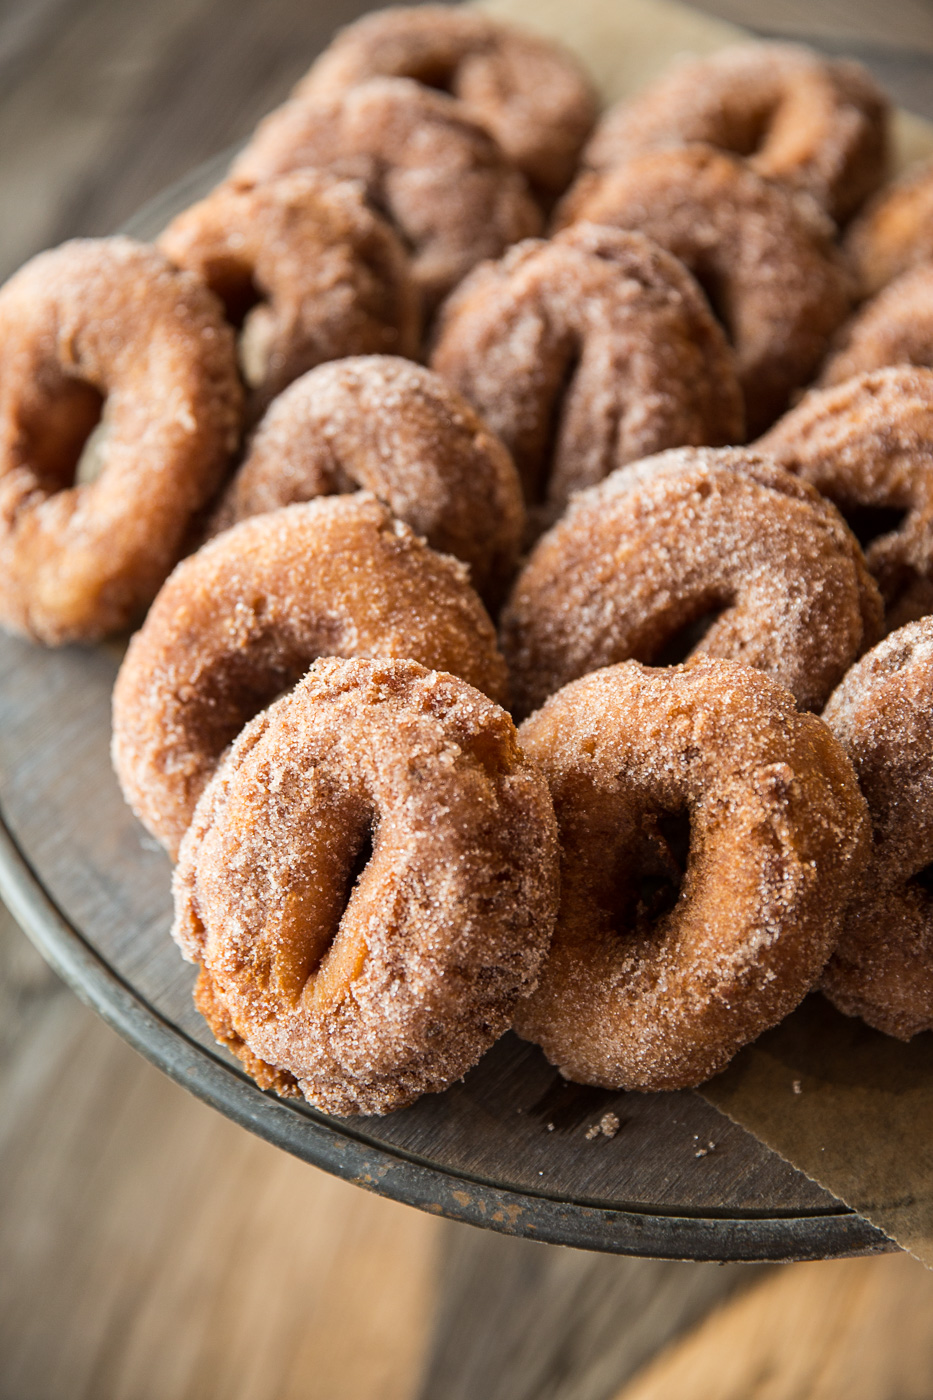 The Peck and Bushel orchard retail shop sells fresh apple cider doughnuts.